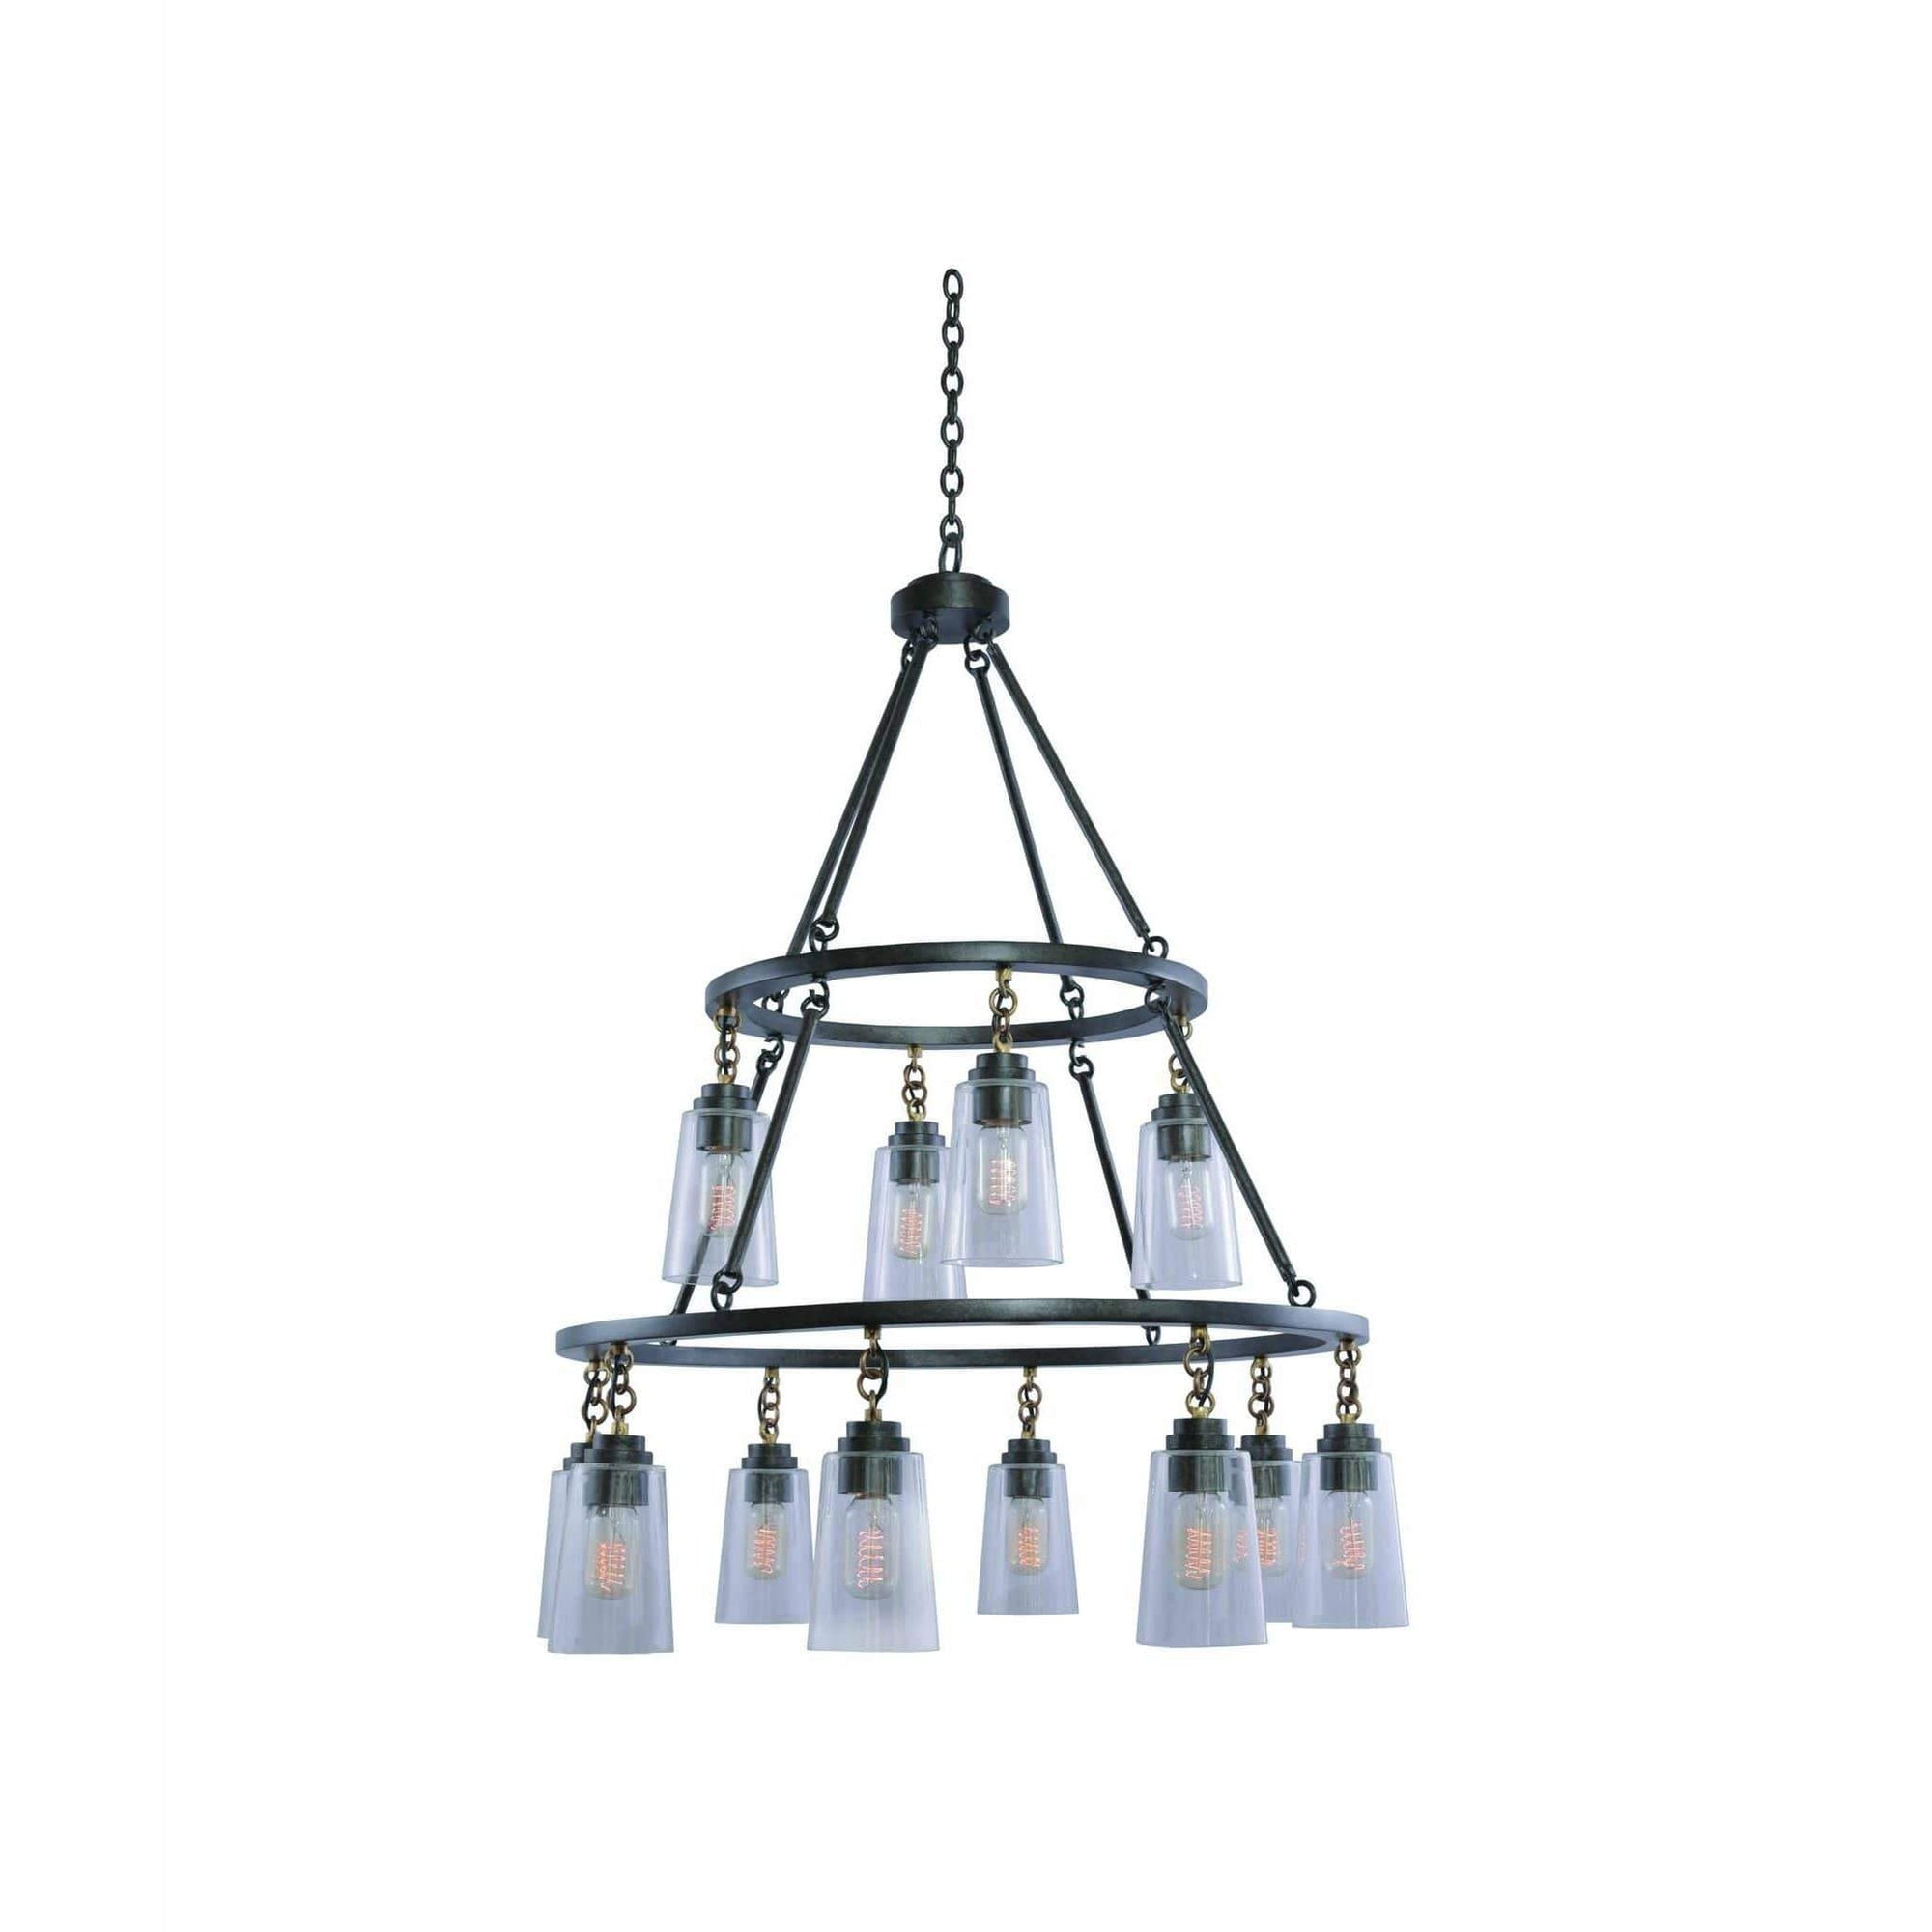 Kalco Lighting Pendants Milled Iron Dillon (8+4) Light 2 Tier Pendant By Kalco Lighting 504953